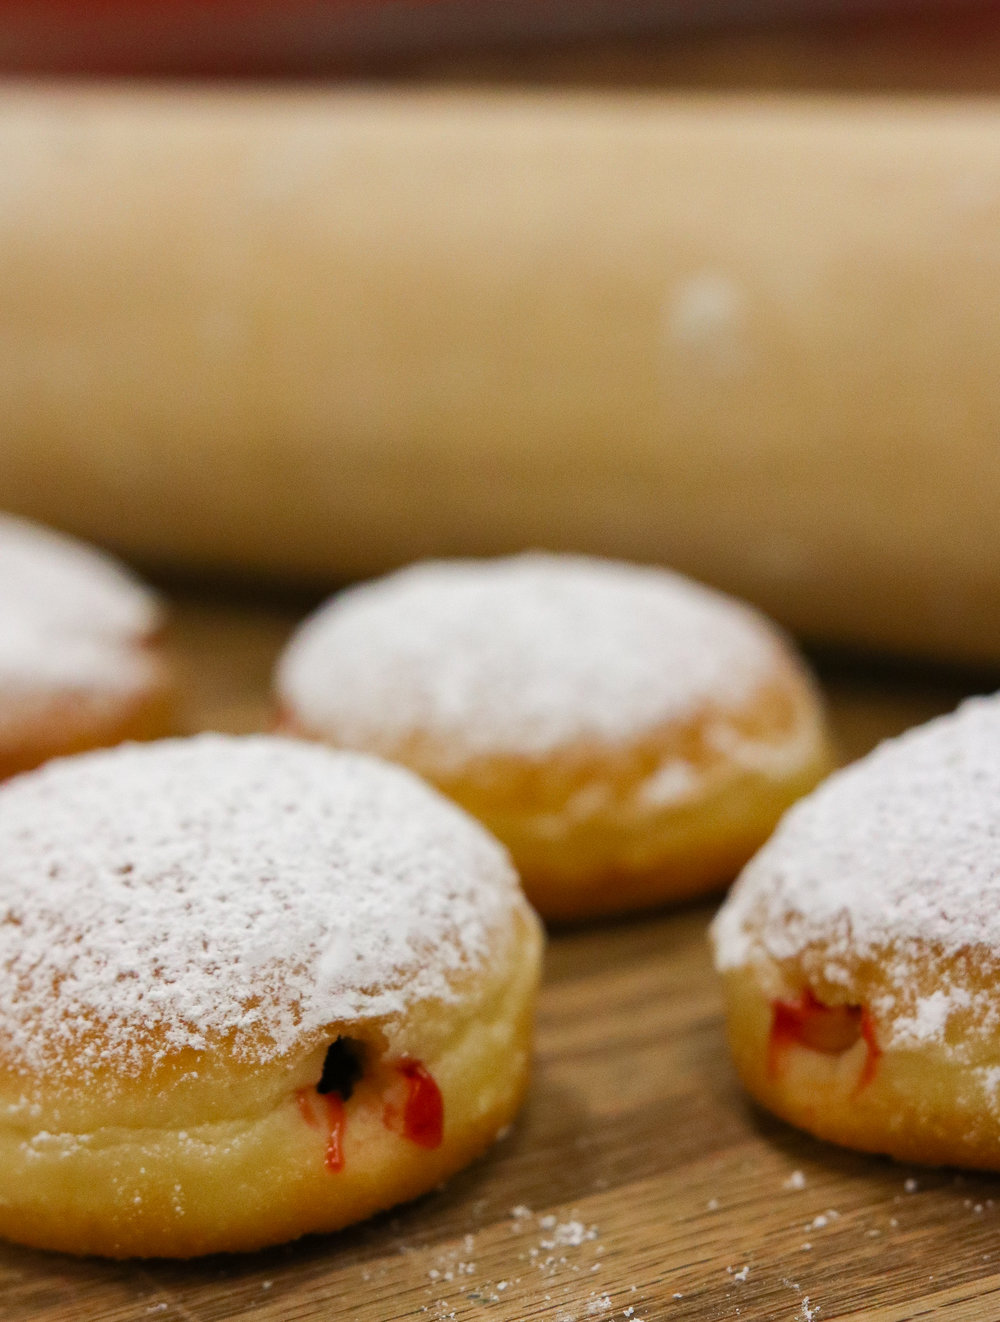 SUFGANIYAH - A TRADITIONAL MINI JEWISH HANNUKAH TREAT. MINIATURE JELLIES FILLED WITH RASPBERRY AND TOPPED WITH POWDERED SUGAR.$2.50 // AVAILABLE AT 11AM